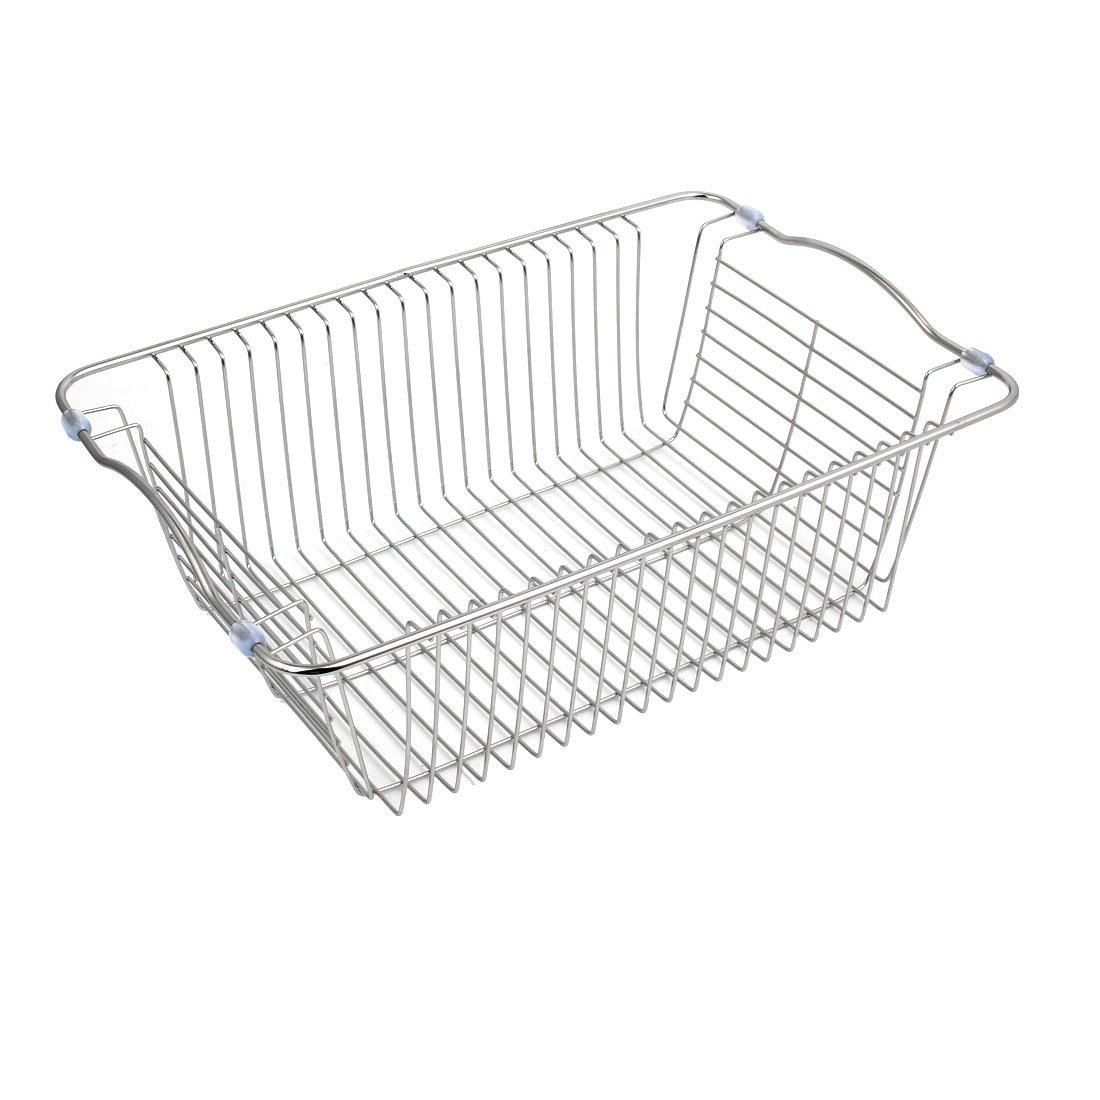 uxcell Kitchen Rack Drainer Storage Holder Stand Sink Caddy 35cmx23cmx12cm by uxcell